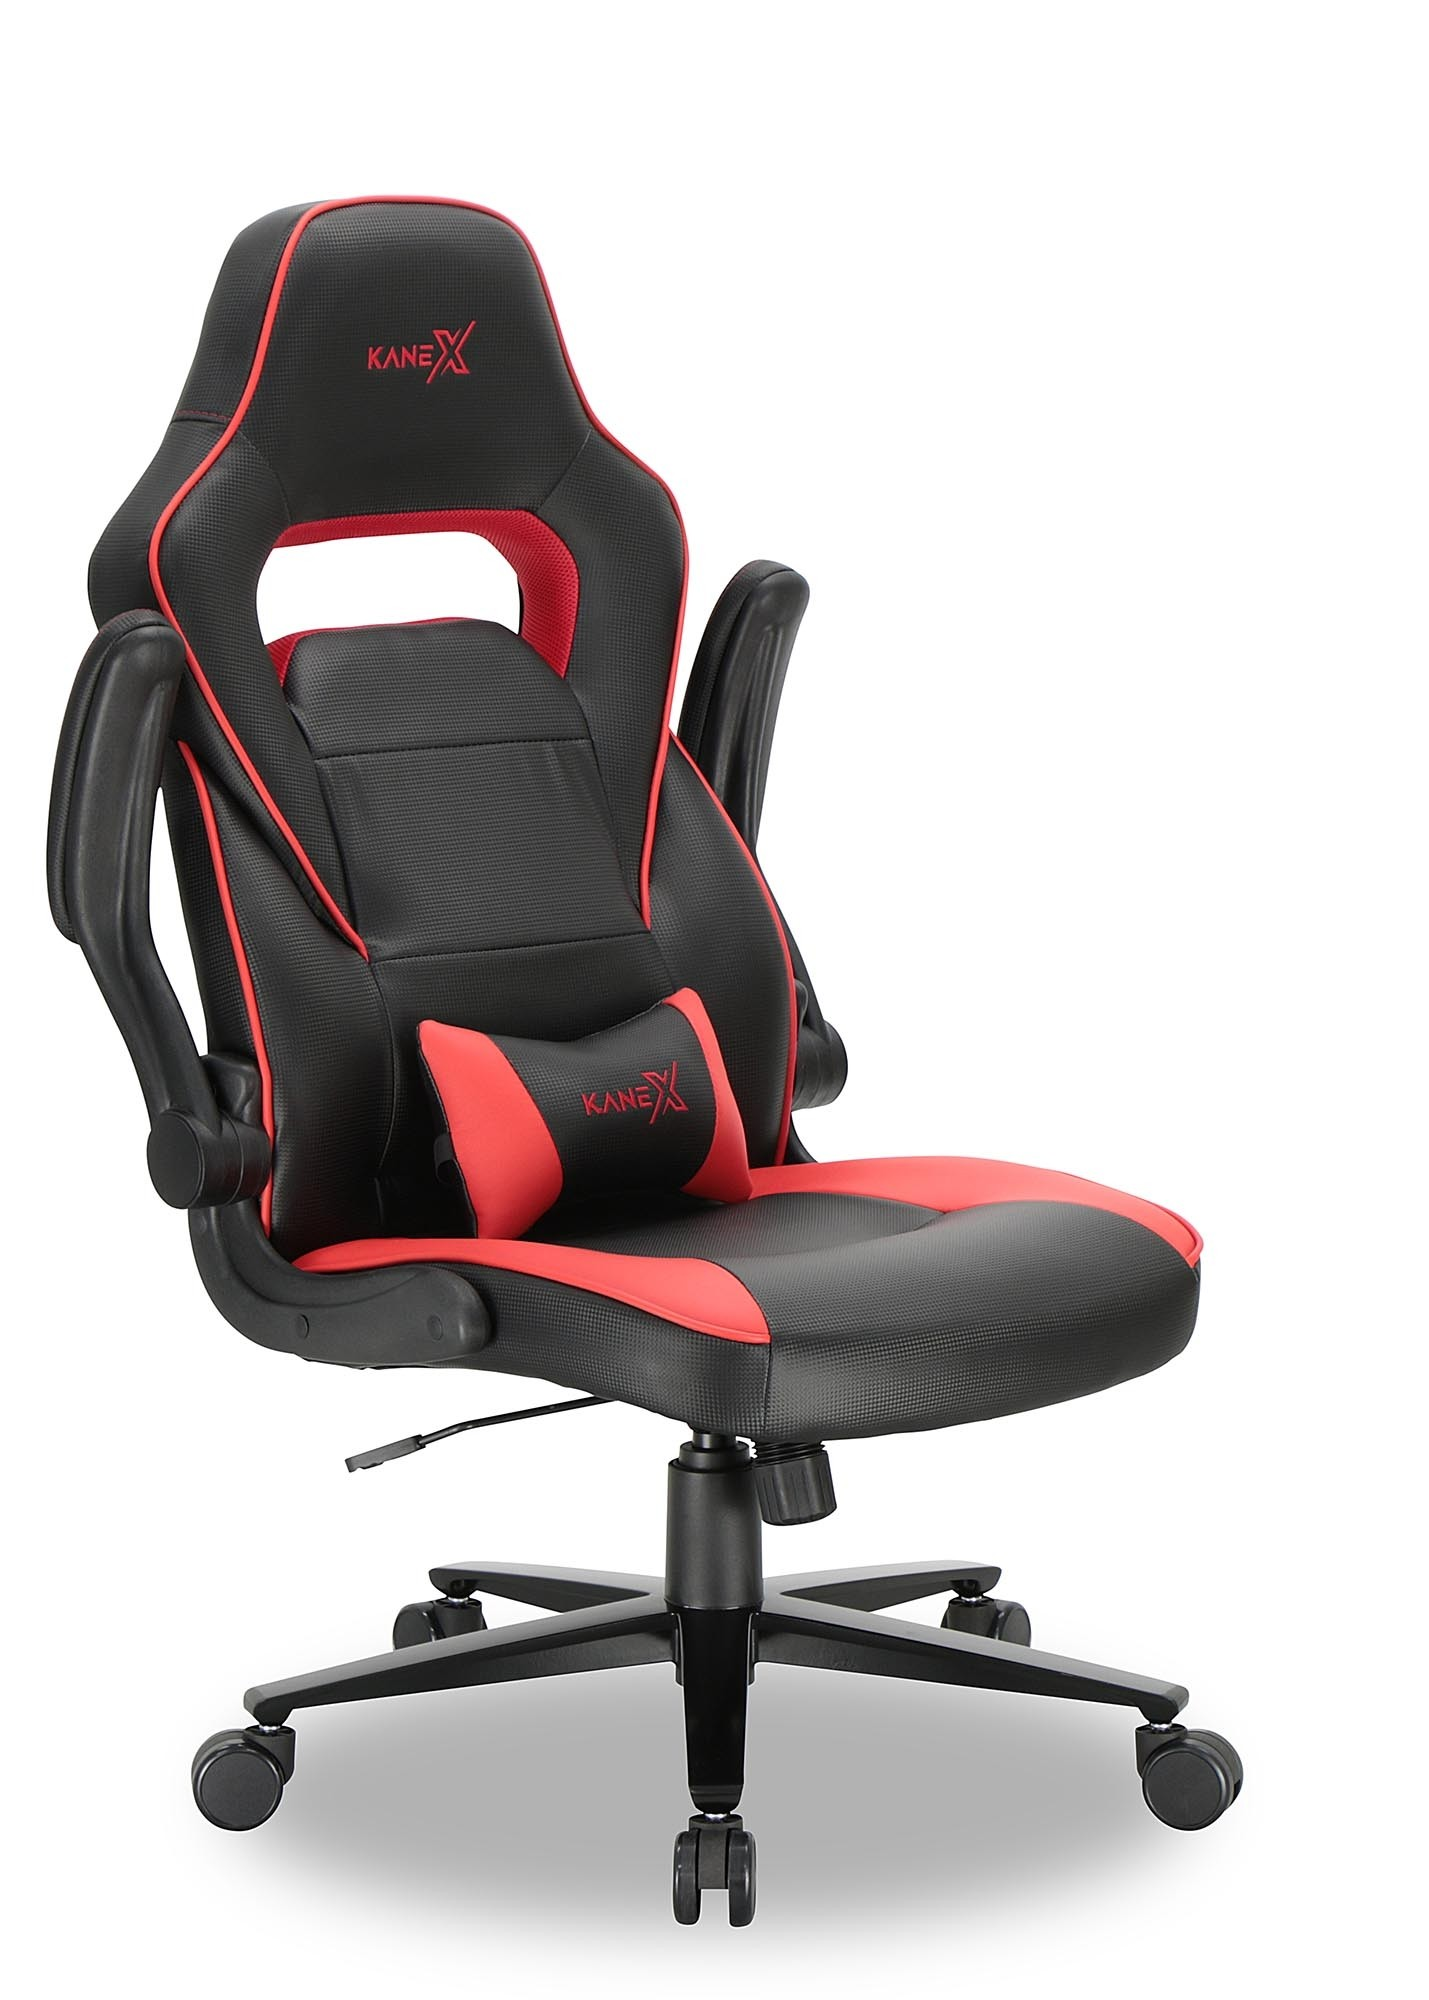 Fabulous Kane X Professional Gaming Chair Argus Red Cjindustries Chair Design For Home Cjindustriesco